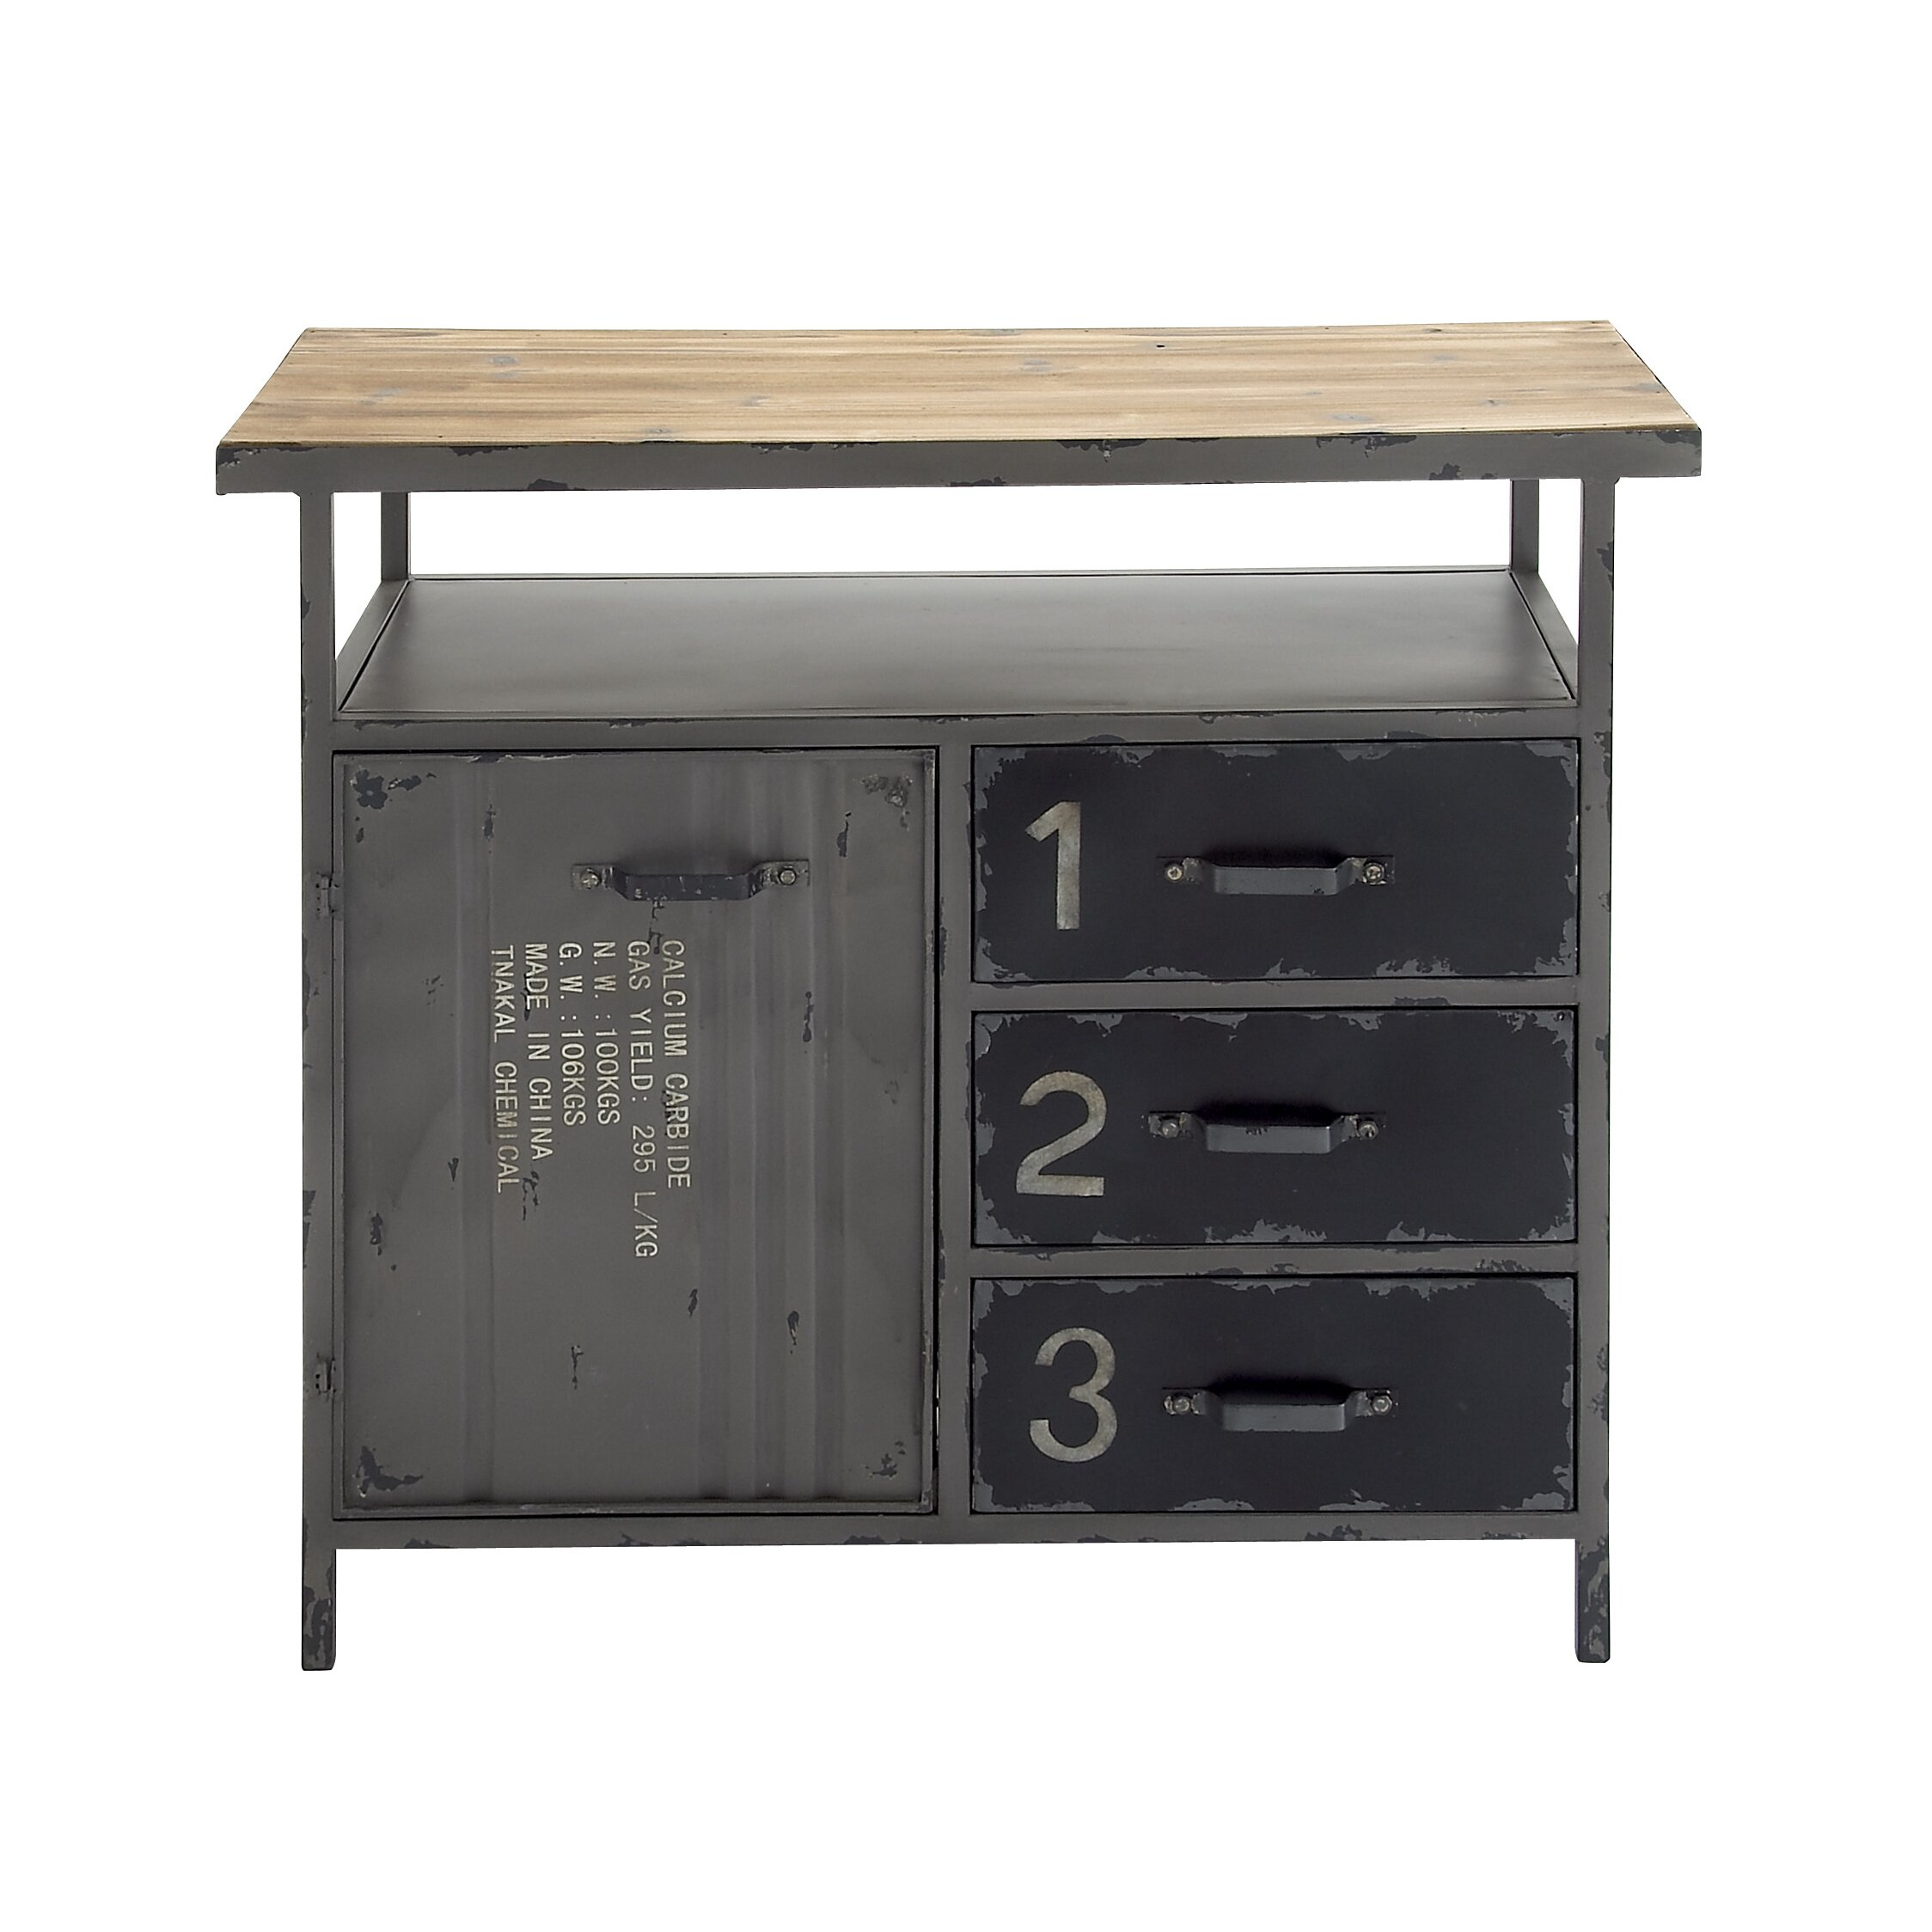 Resin Utility Cabinet Metal Utility Storage Cabinet Wayfair